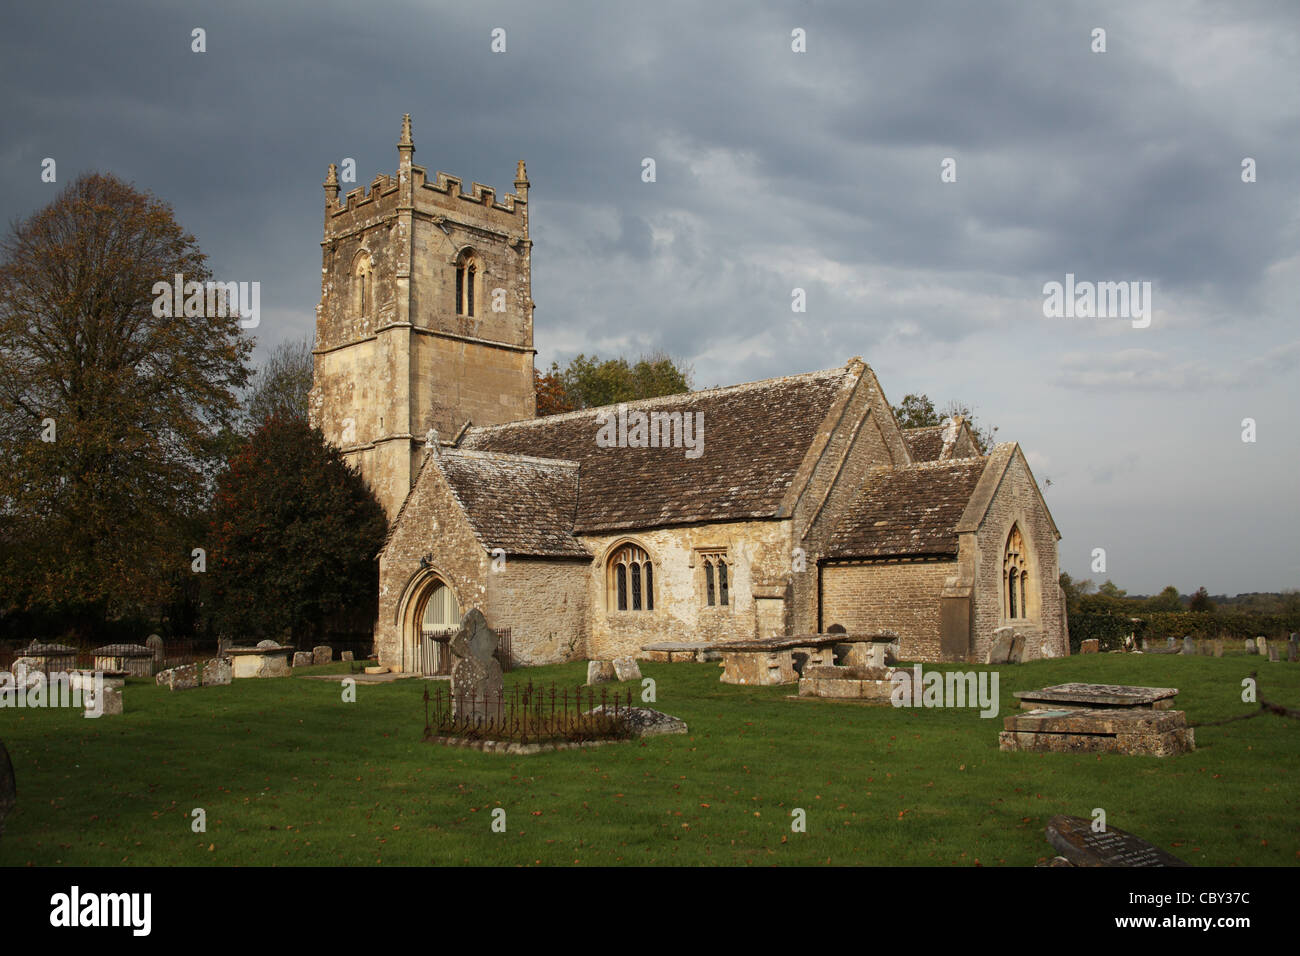 Church of the Holy Cross, Hankerton, Wiltshire, England - Stock Image